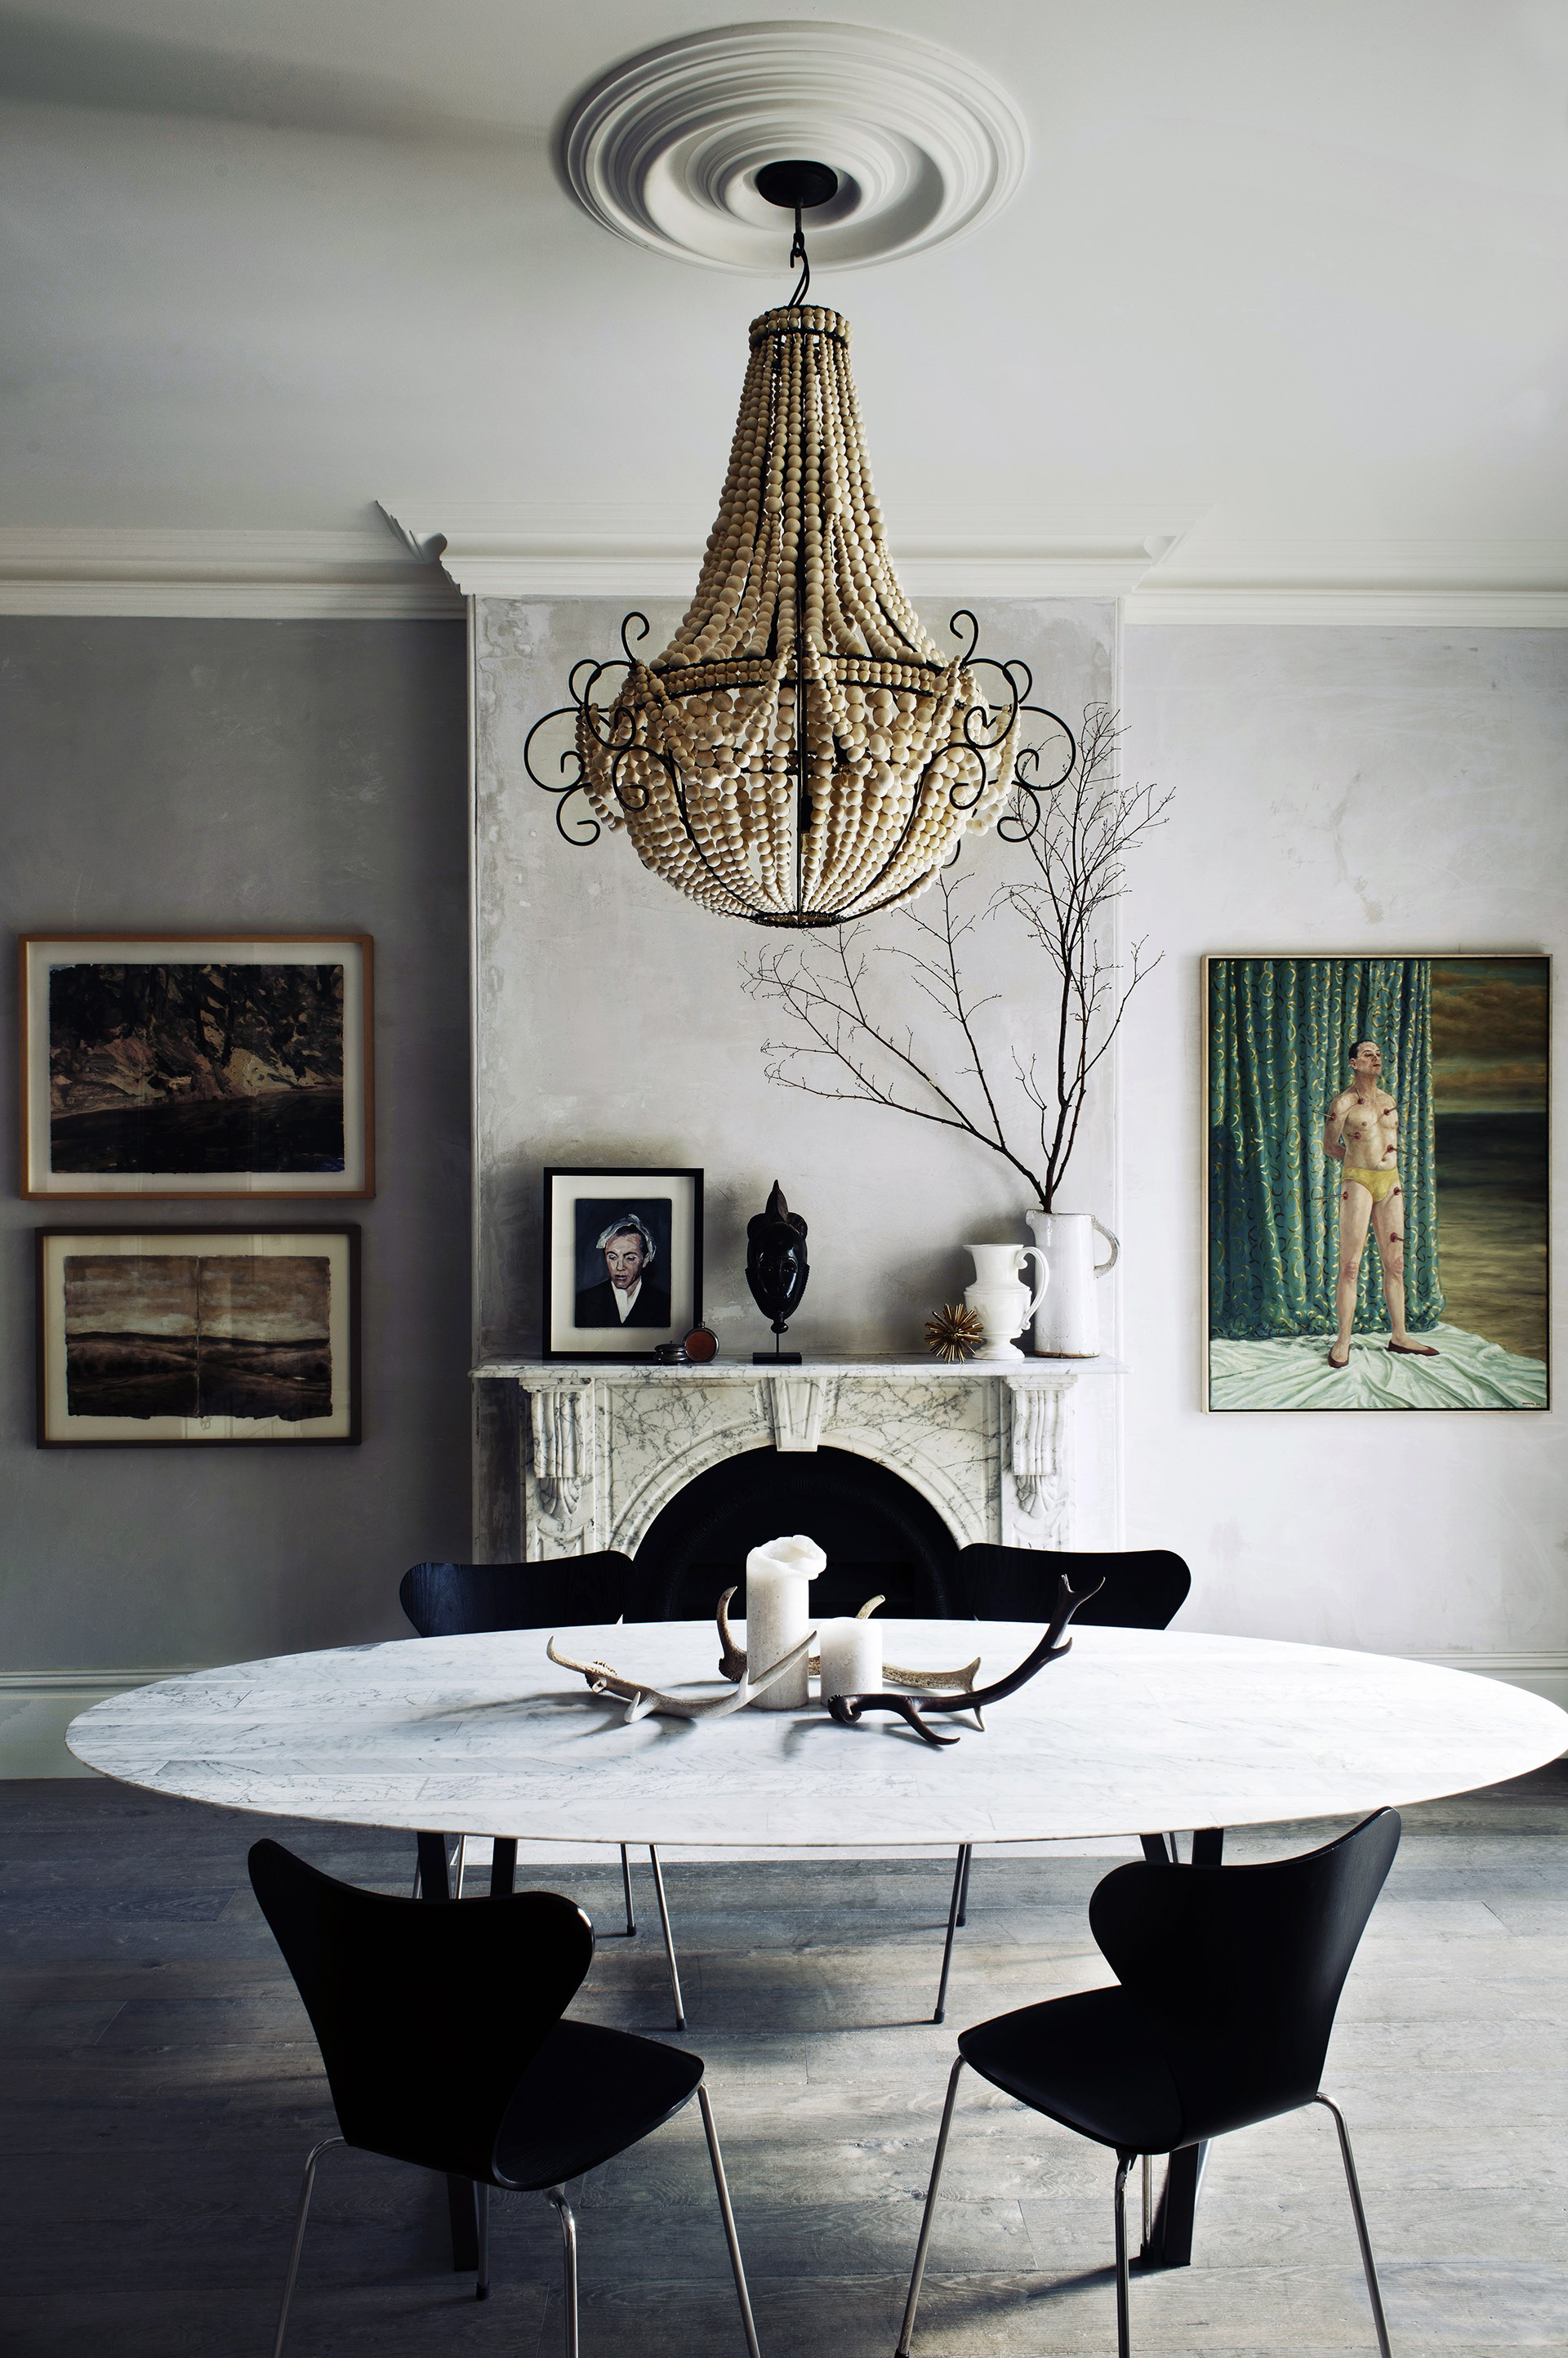 "Made from hundreds of clay beads, this delicate chandelier made to order from [The Design Hunter](http://www.thedesignhunter.com.au/?utm_campaign=supplier/|target=""_blank"") is a surprising addition to this otherwise subdued space. See more of this [moody Paddington home](http://www.homestolove.com.au/pennys-paddington-terrace-renovation-2462